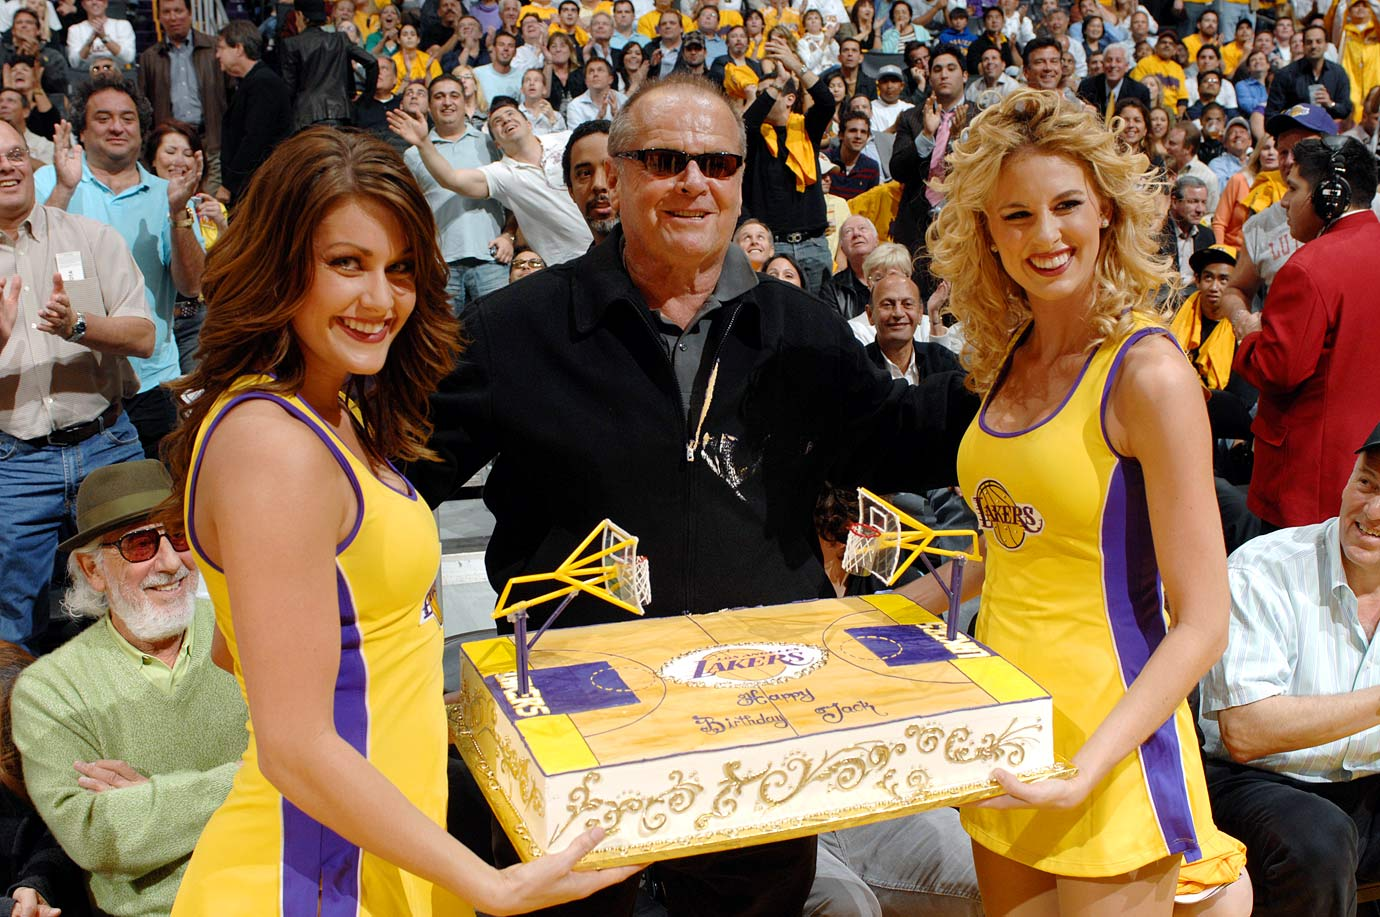 When you're a die-hard Lakers fan like Jack Nicholson, you get a big, golden cake and a pair of cheerleaders for your 70th birthday.